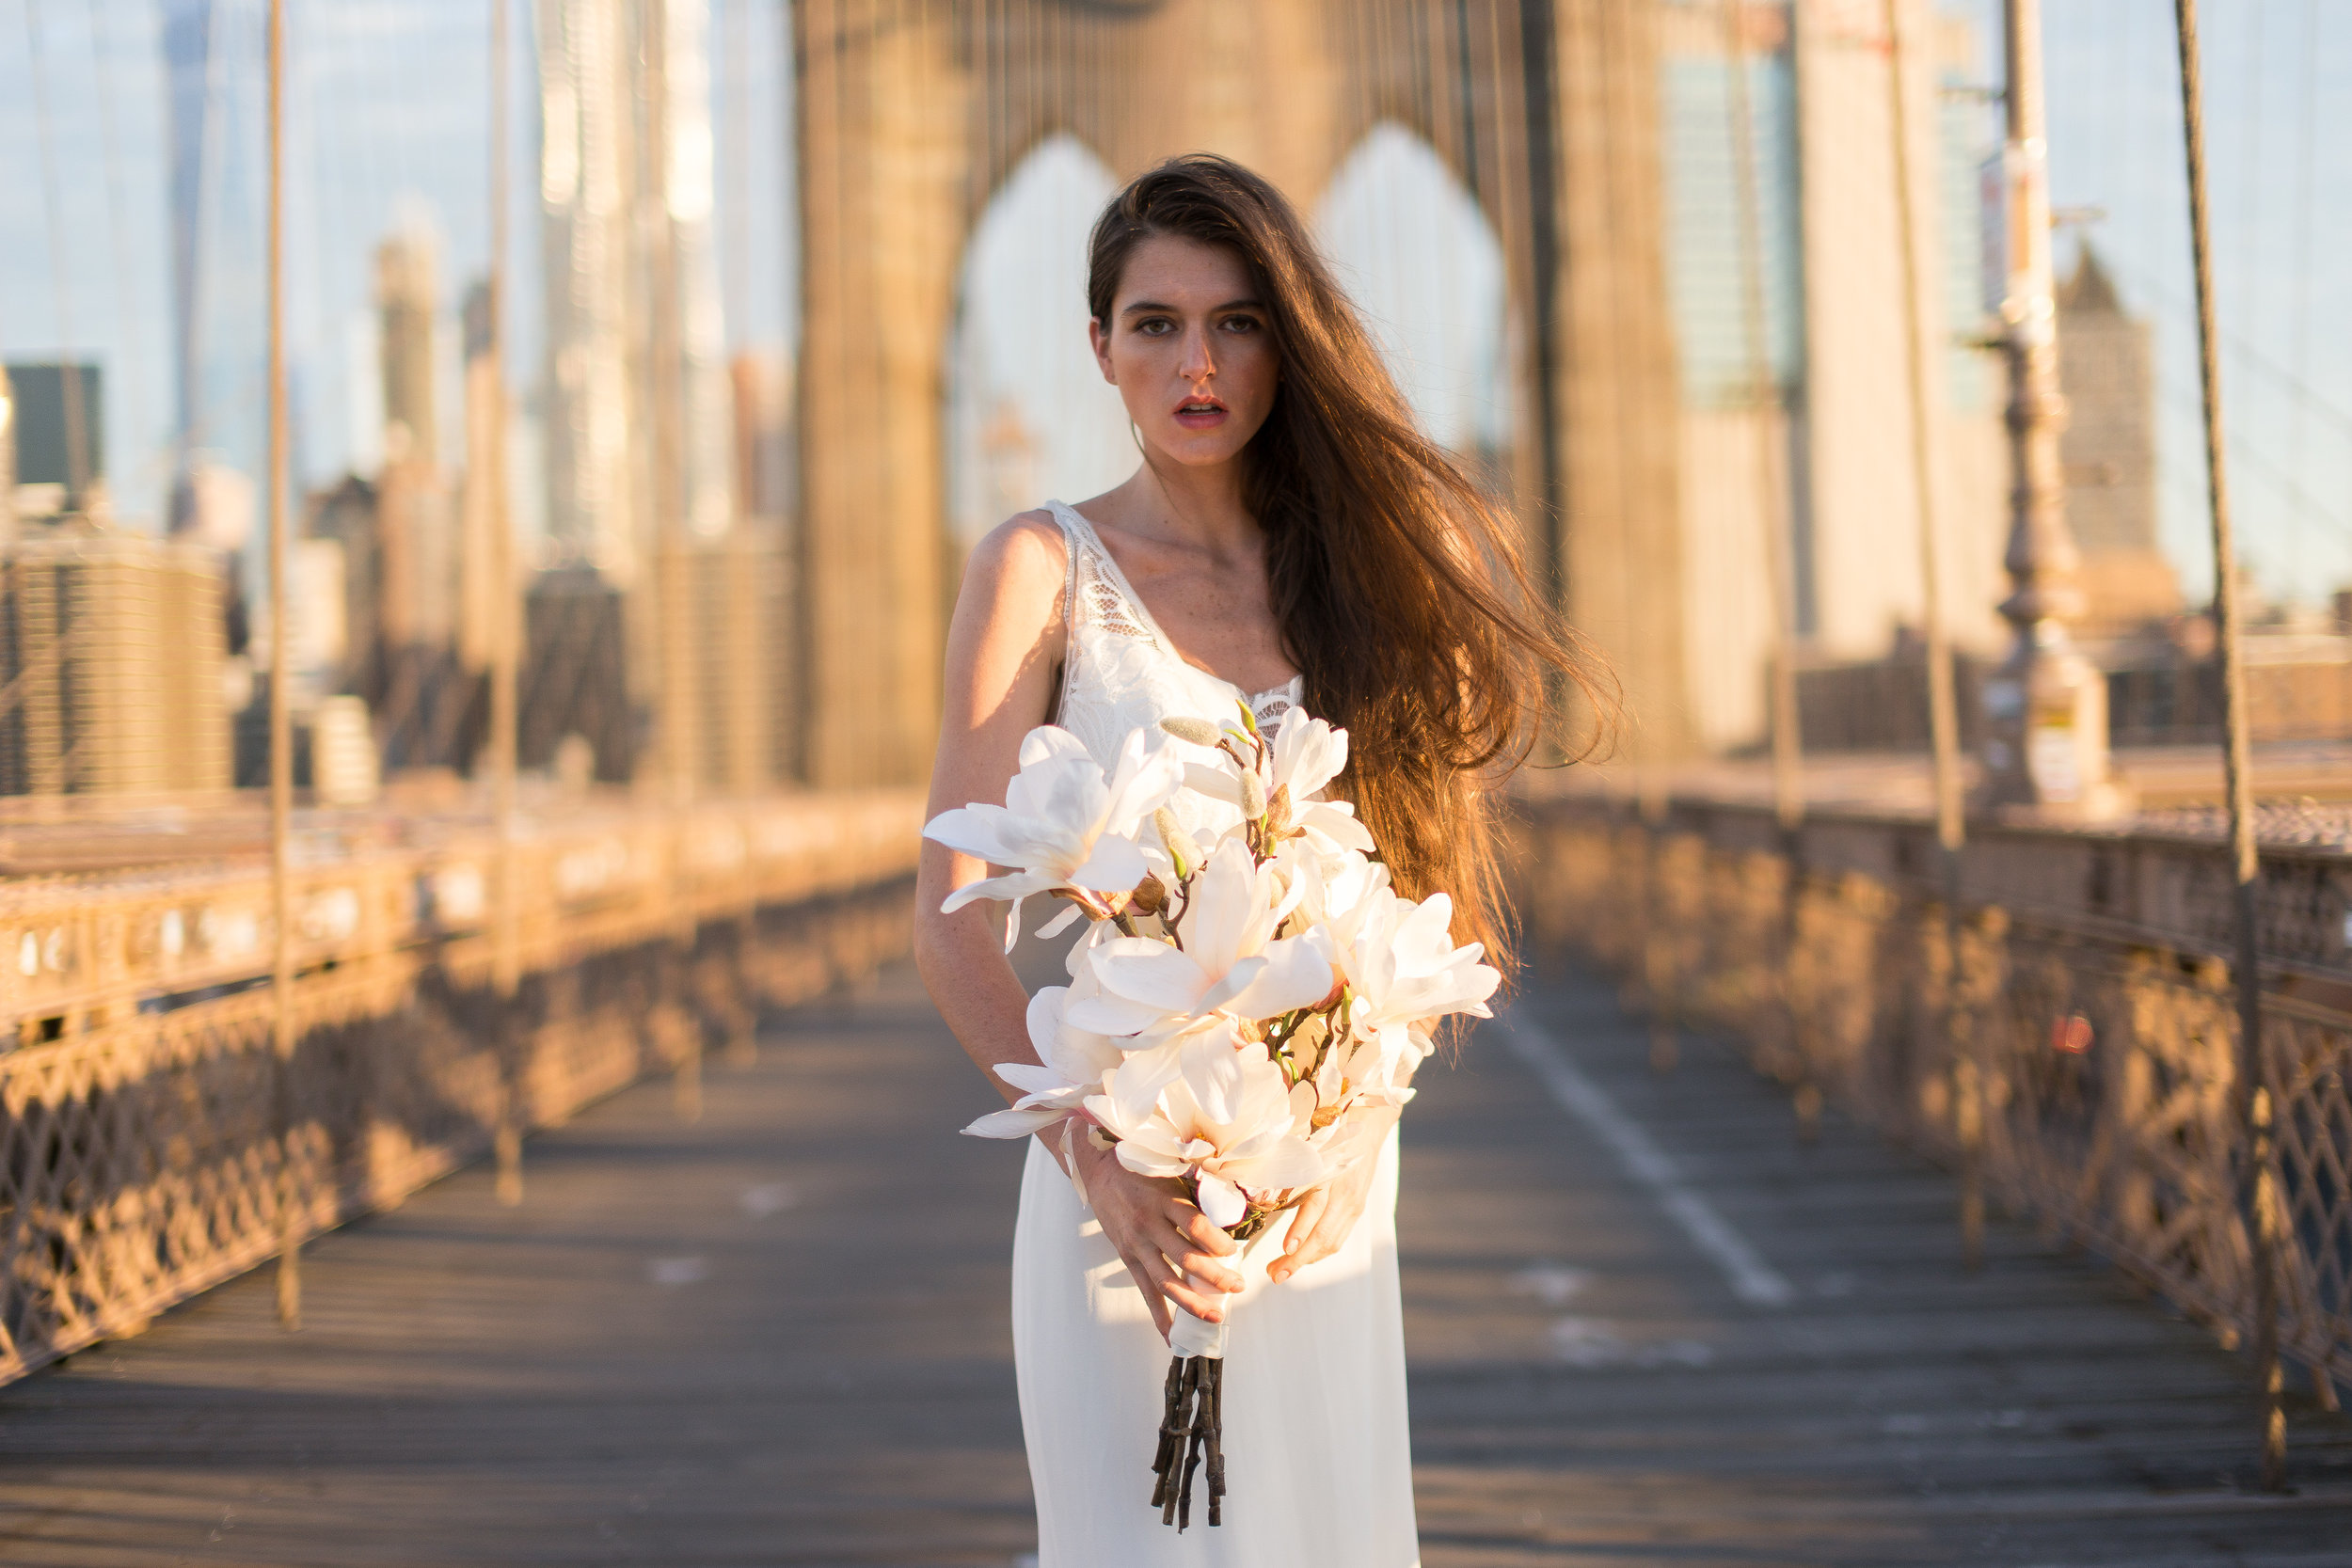 LYB_NYC_by_Jan_Freire-Bredice_Beauty_hmau_weddings4884.jpg